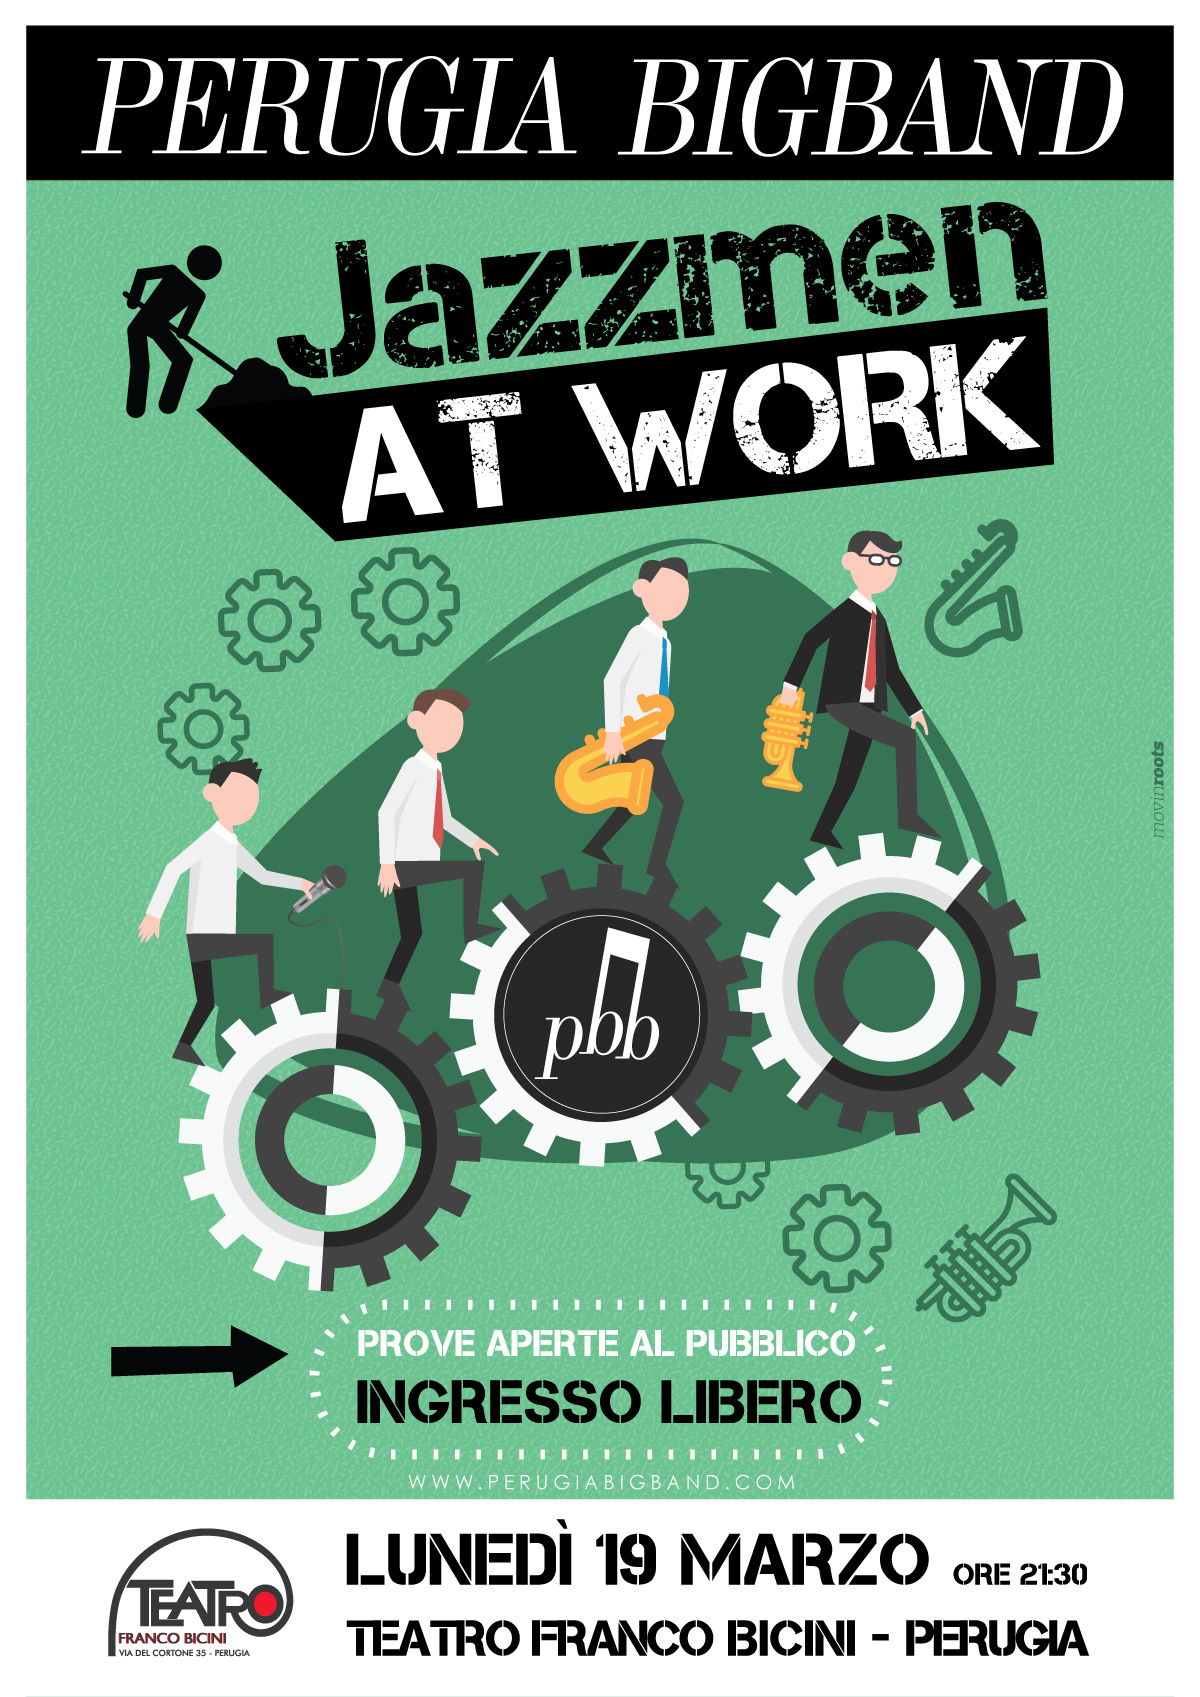 JAZZMEN AT WORK perugia big band Teatro Bicini